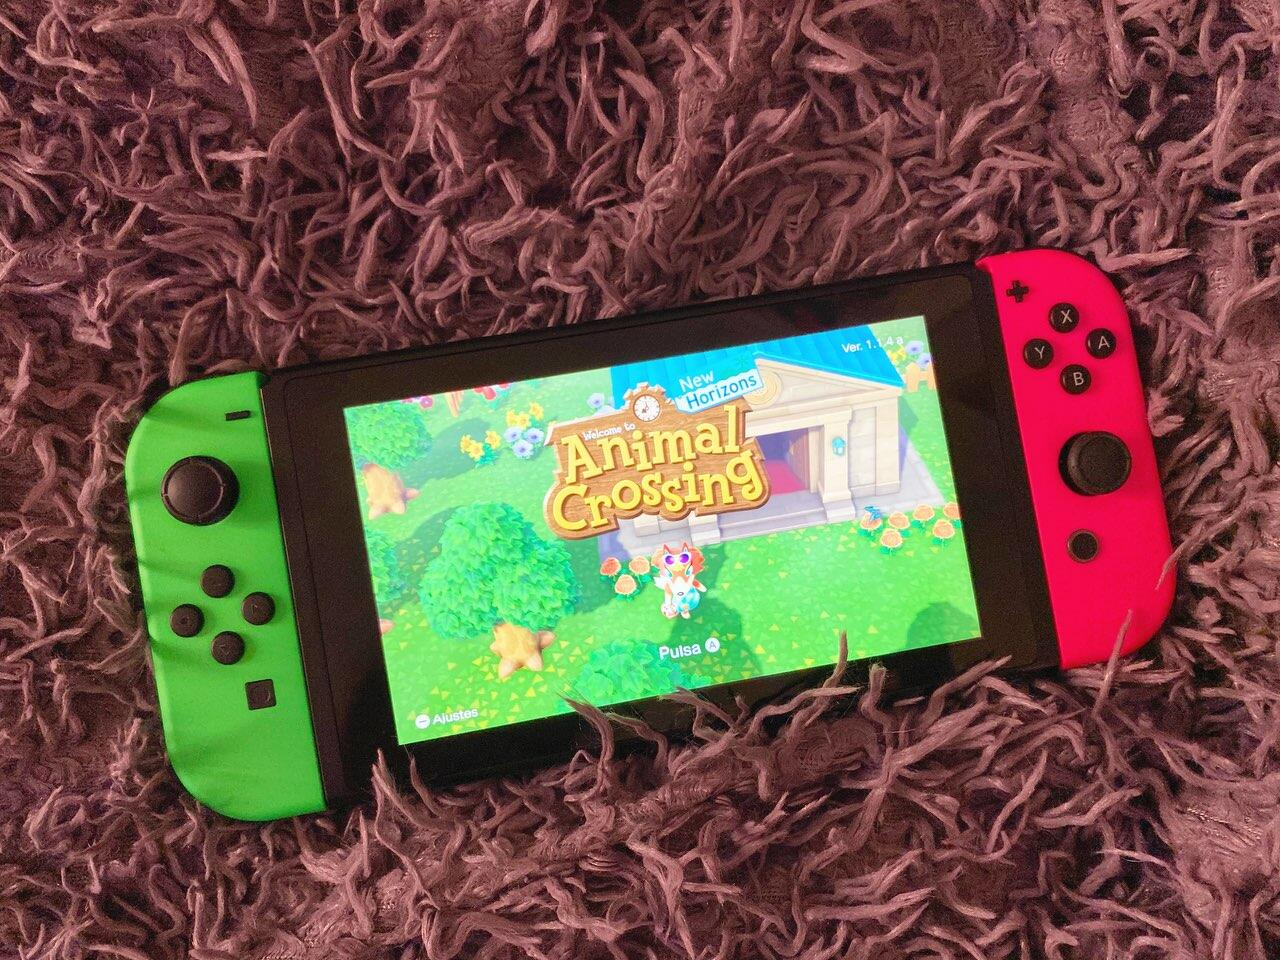 Nintendo Switch with Animal Crossing: New Horizons on the screen